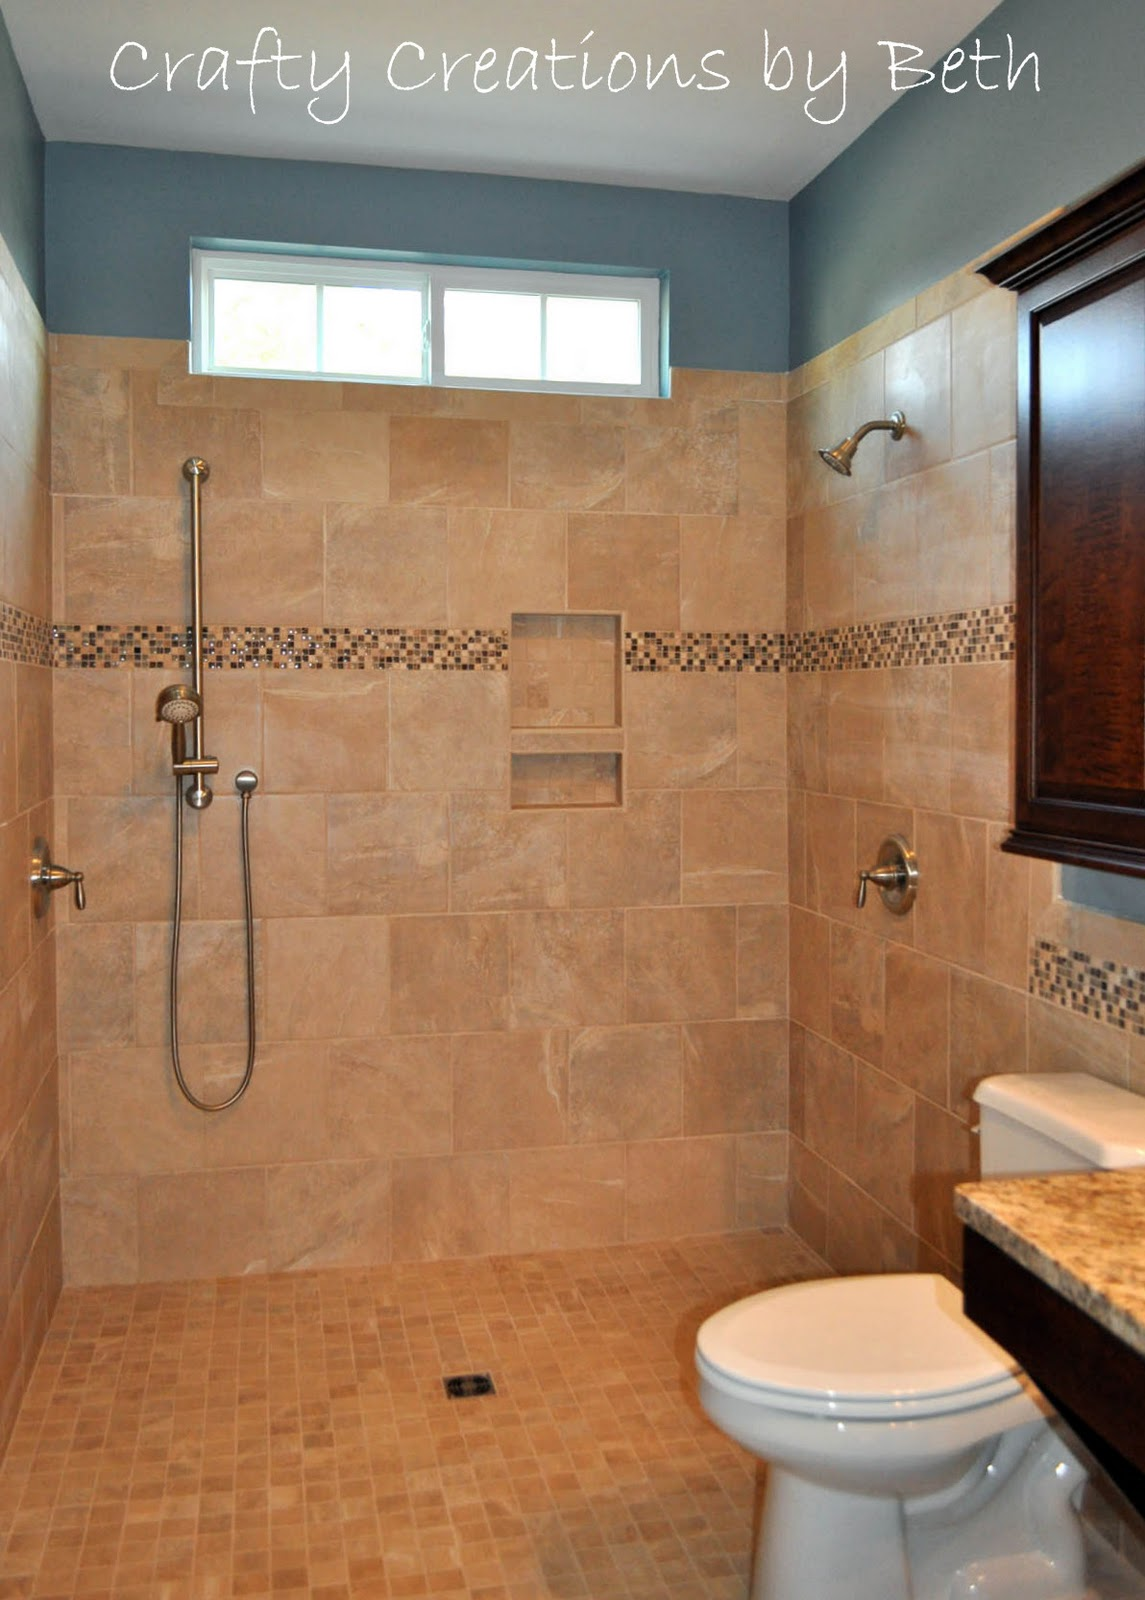 Wheelchair Accessible Bathroom Remodel - Sonya Hamilton Designs on wheelchair access kitchens, wheelchair access ramps, wheelchair showers bathroom, wheelchair ada lavatory, wheelchair shower stall, wheelchair access vanities,